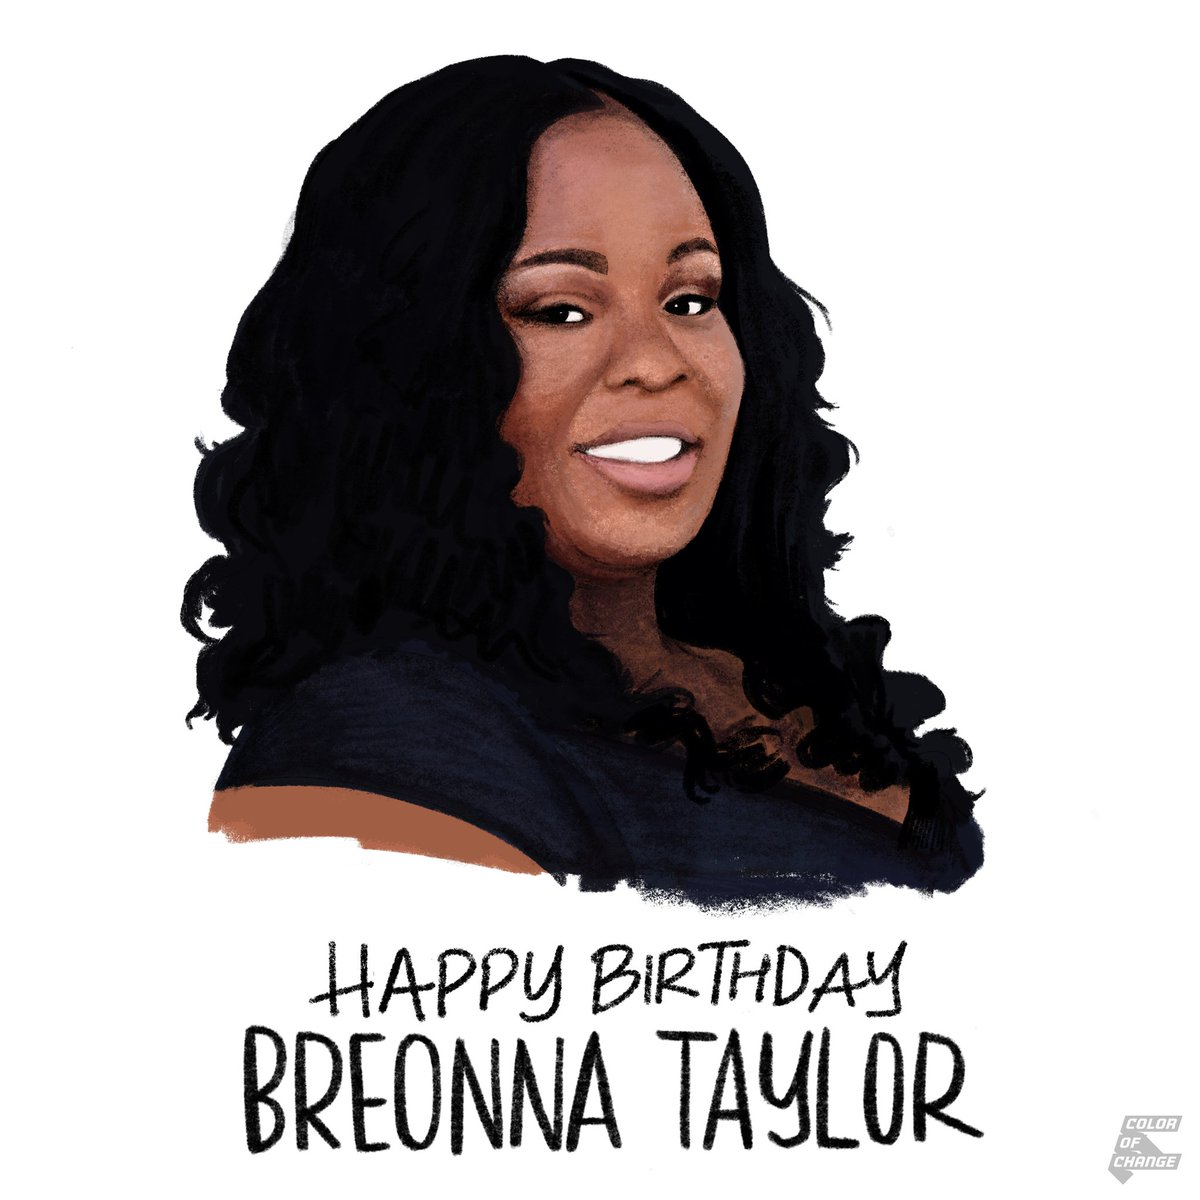 In honor of Breonna Taylor's birthday, demand #JusticeforBre and sign @colorofchange's petition to call on public officials across the country to take action: https://t.co/8eVhErmNLJ   Art via @robinxhilkey https://t.co/dYnfdVLuA1